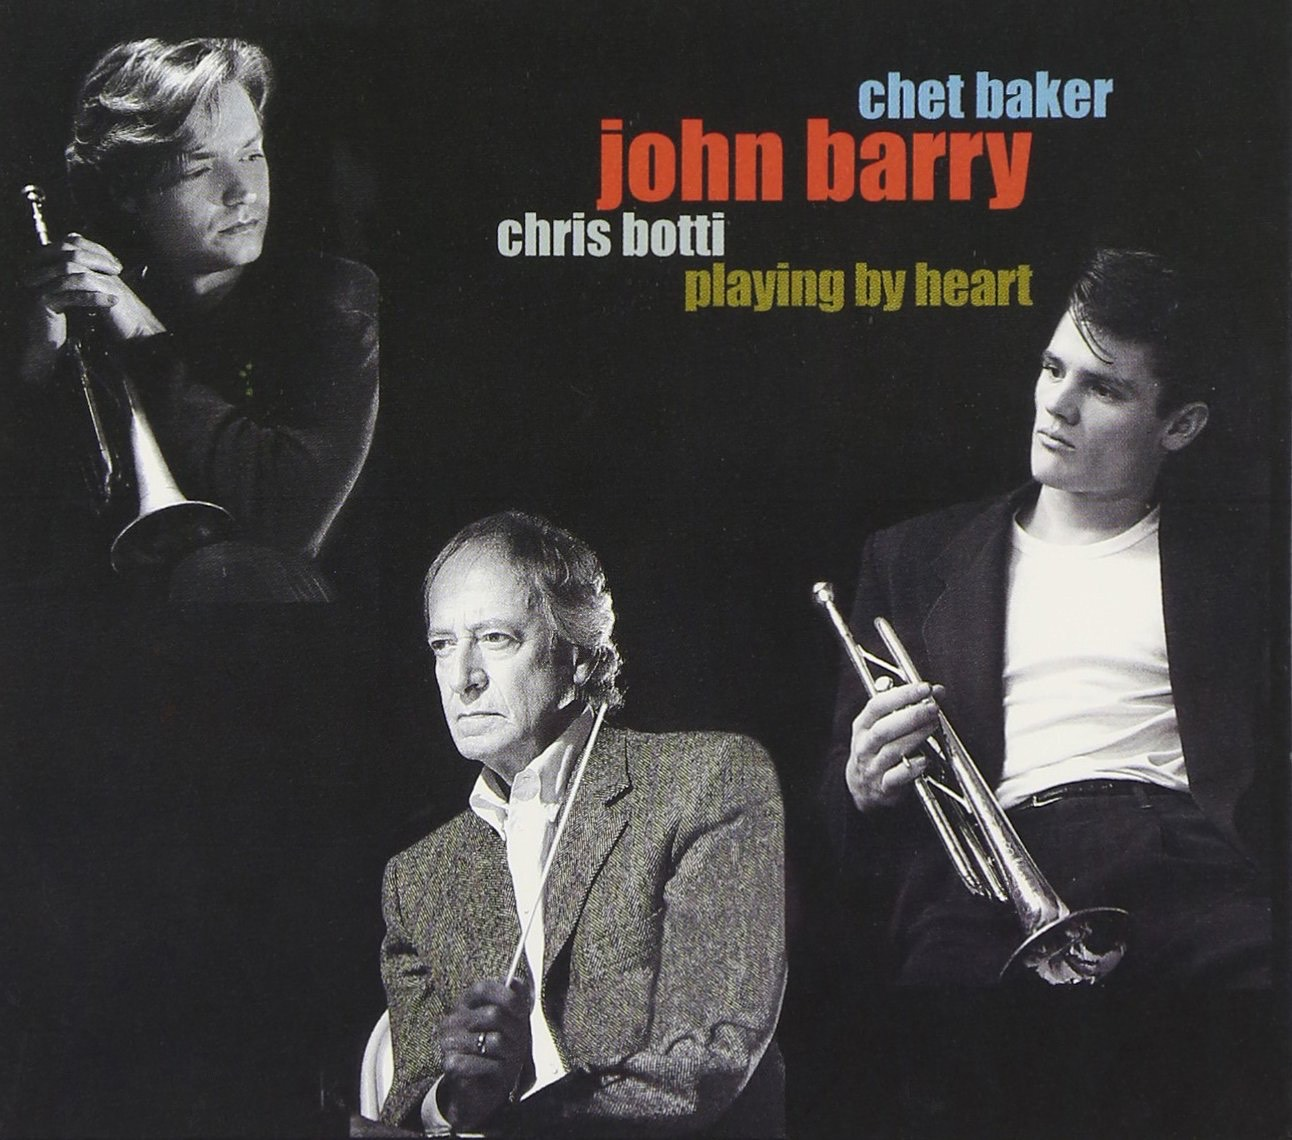 Play-by-heart-chat-Baker-John-Barry-and-Chris-Botty-1631848401